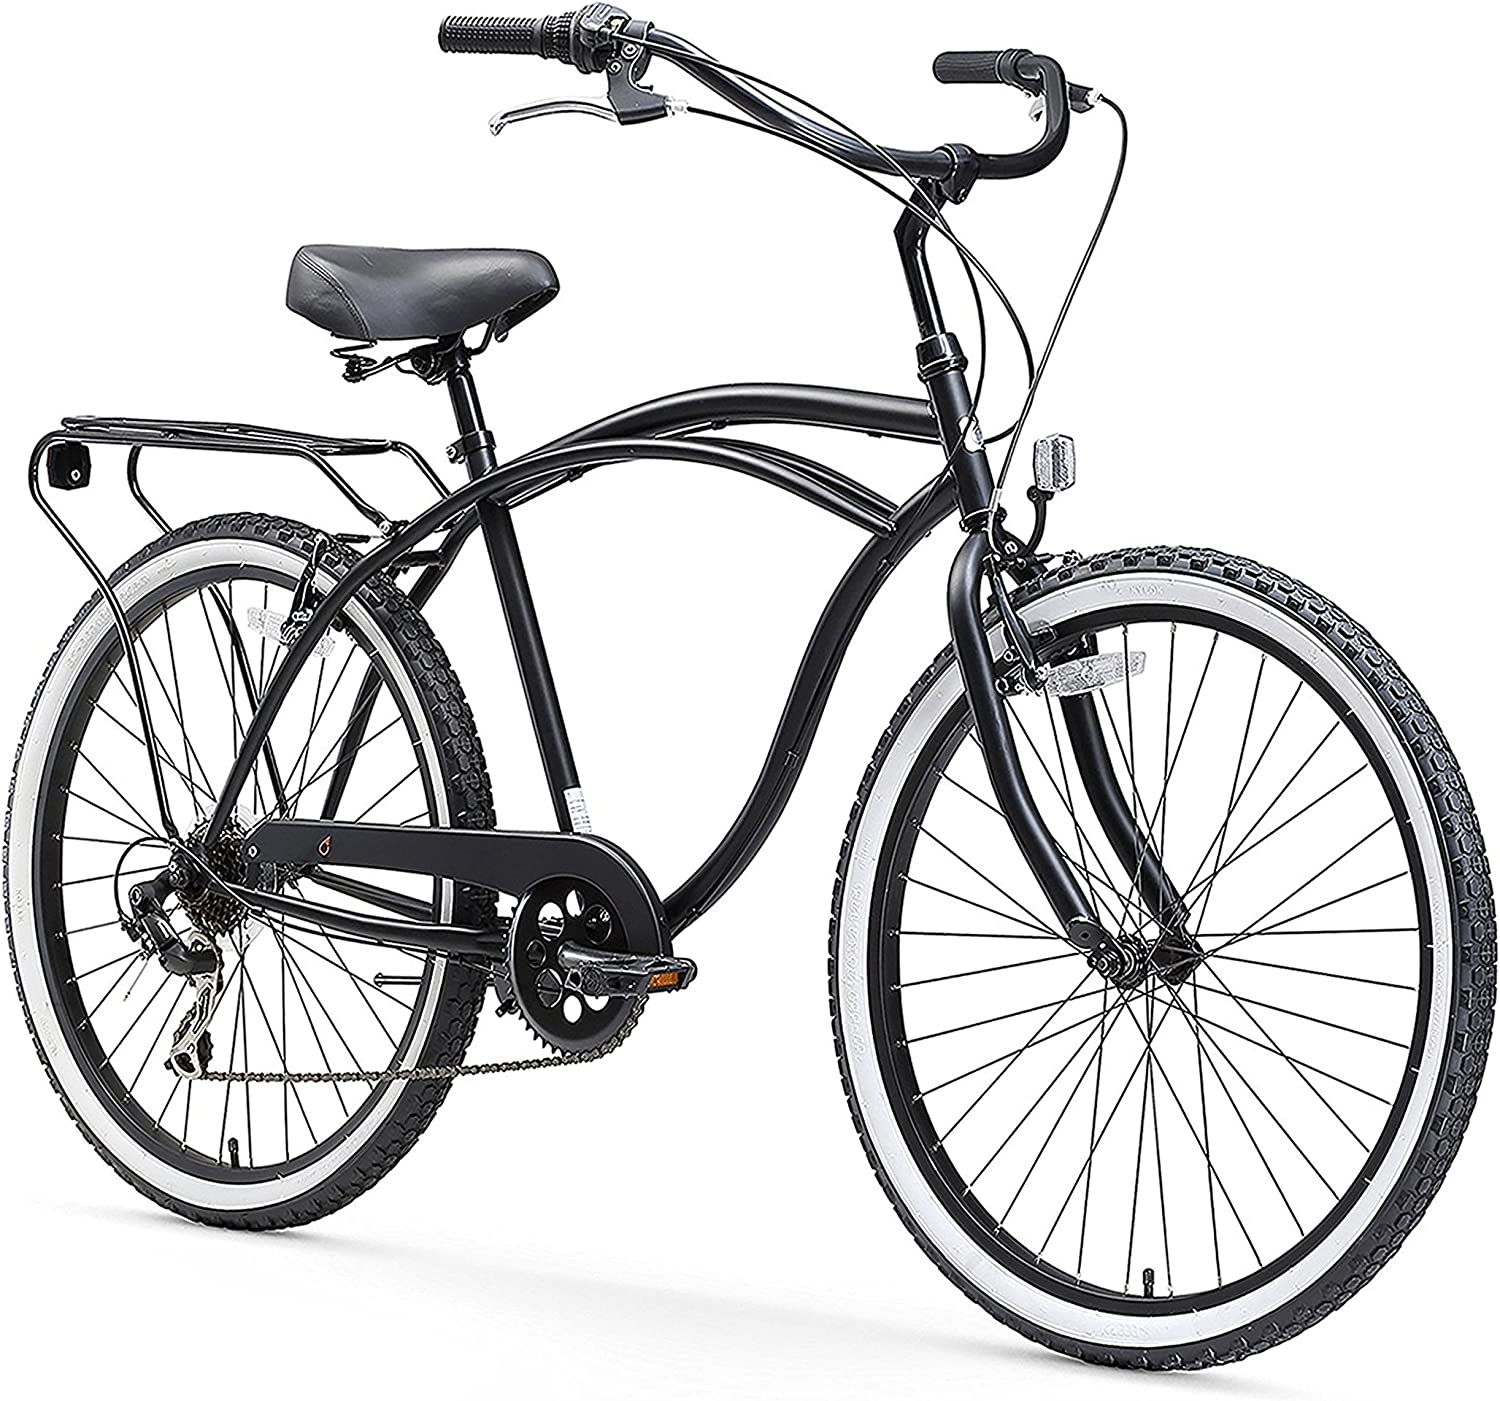 Amazon Com Sixthreezero Around The Block Men S 7 Speed Beach Cruiser Bicycle 26 Wheels Matte Black With Black Seat And Grips Sports Outdoors